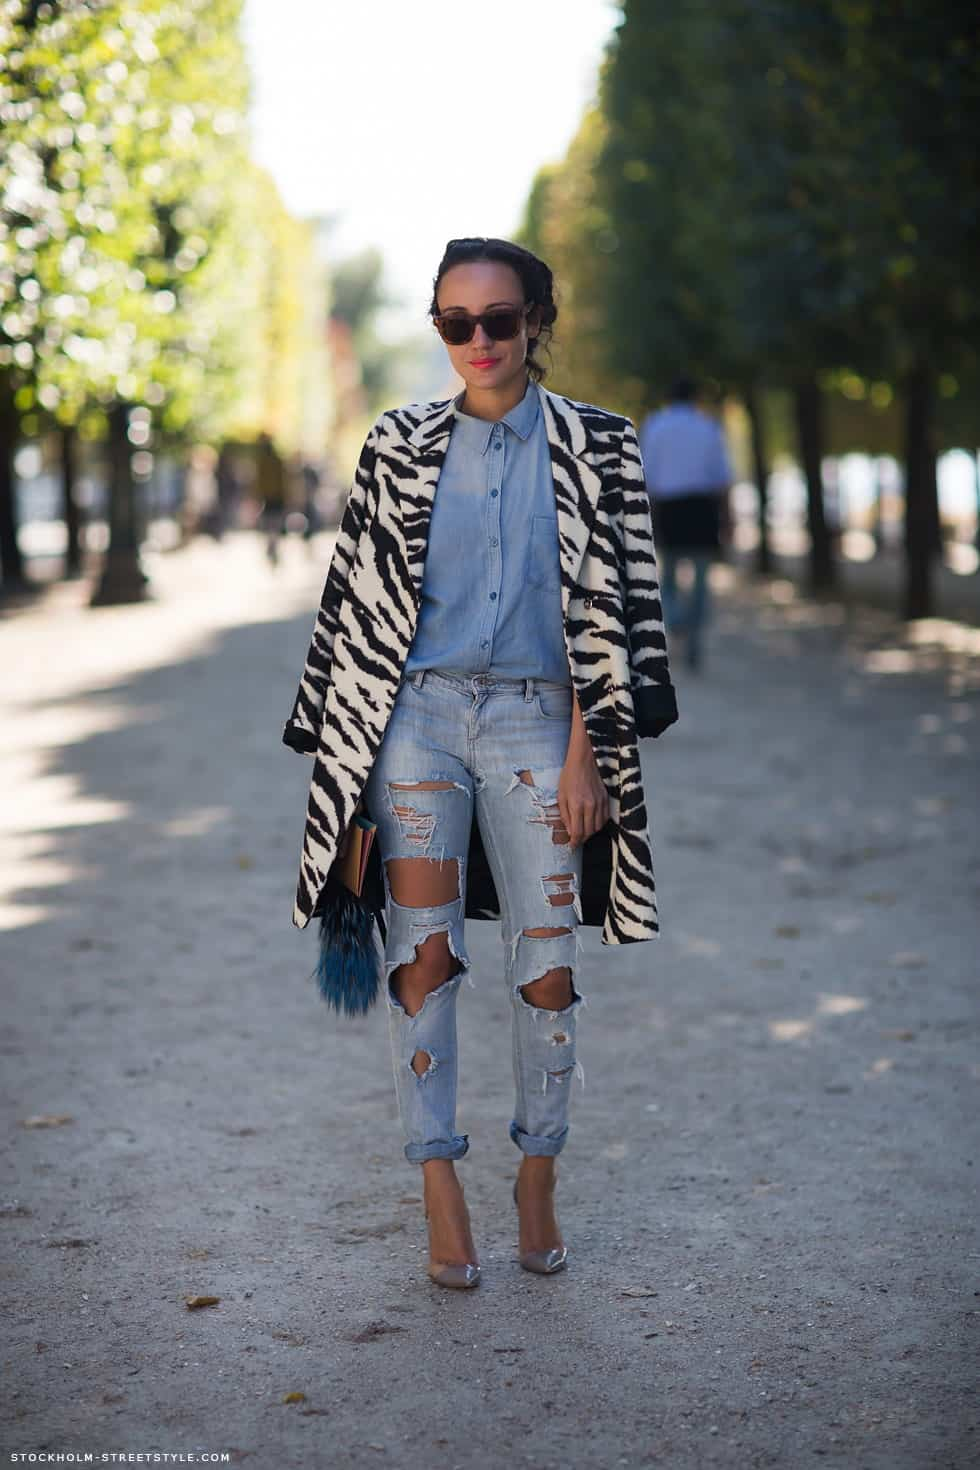 street-stye-denim-on-denim